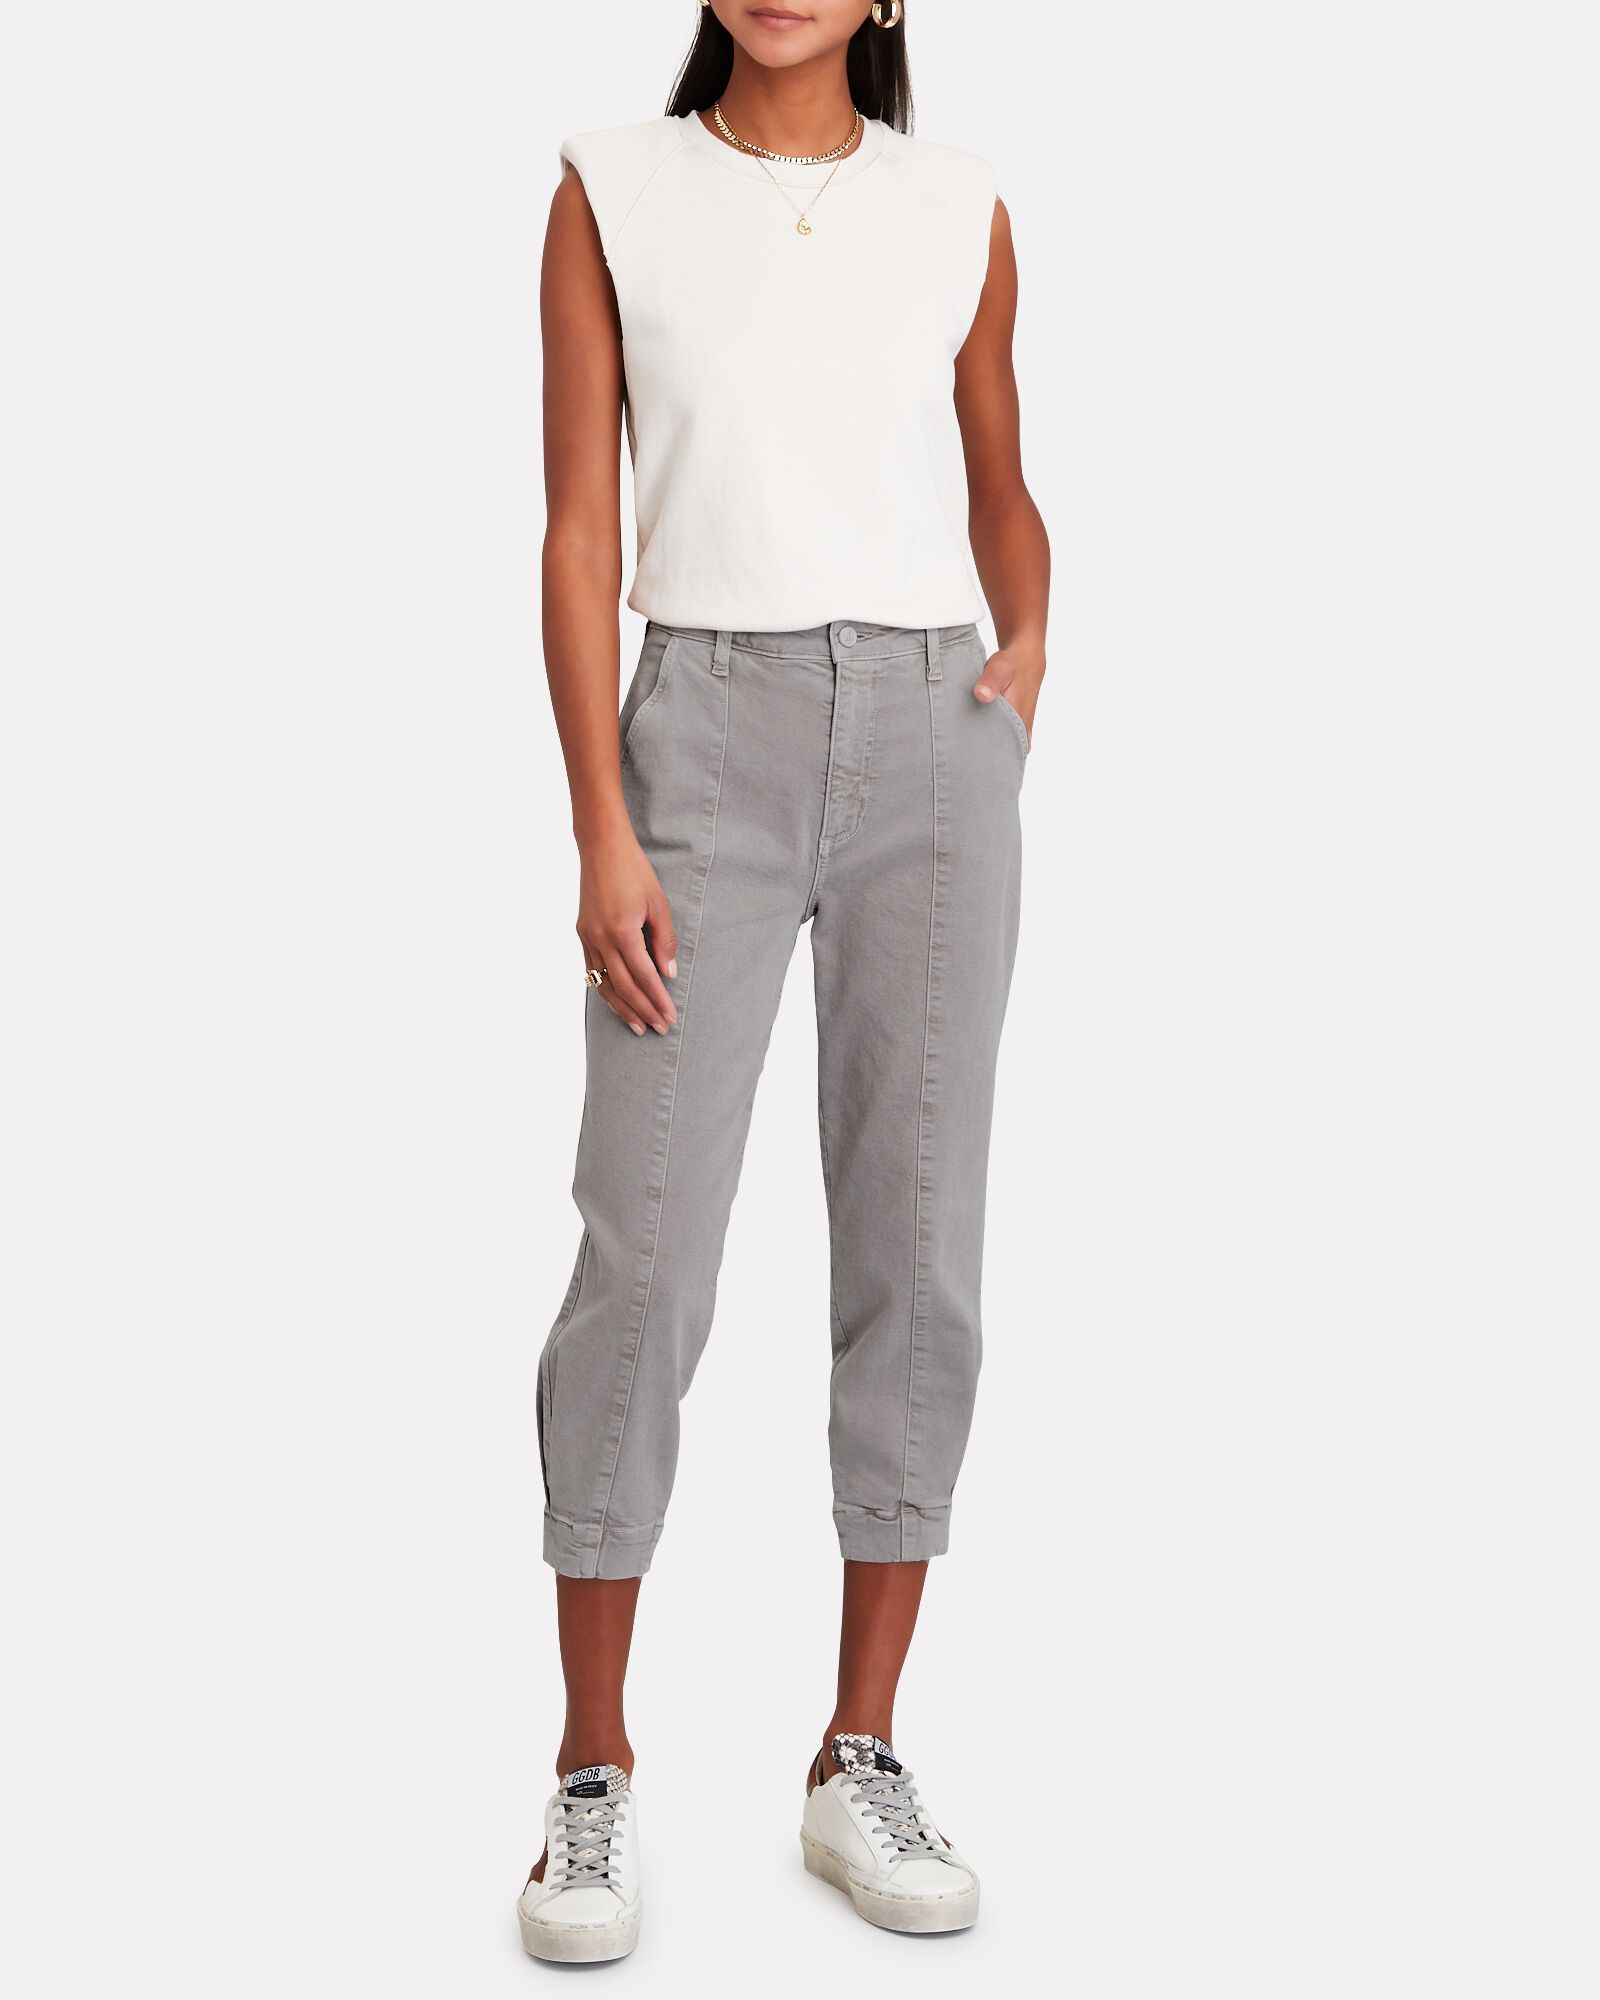 Paloma Cropped Jogger Jeans, TAUPE, hi-res